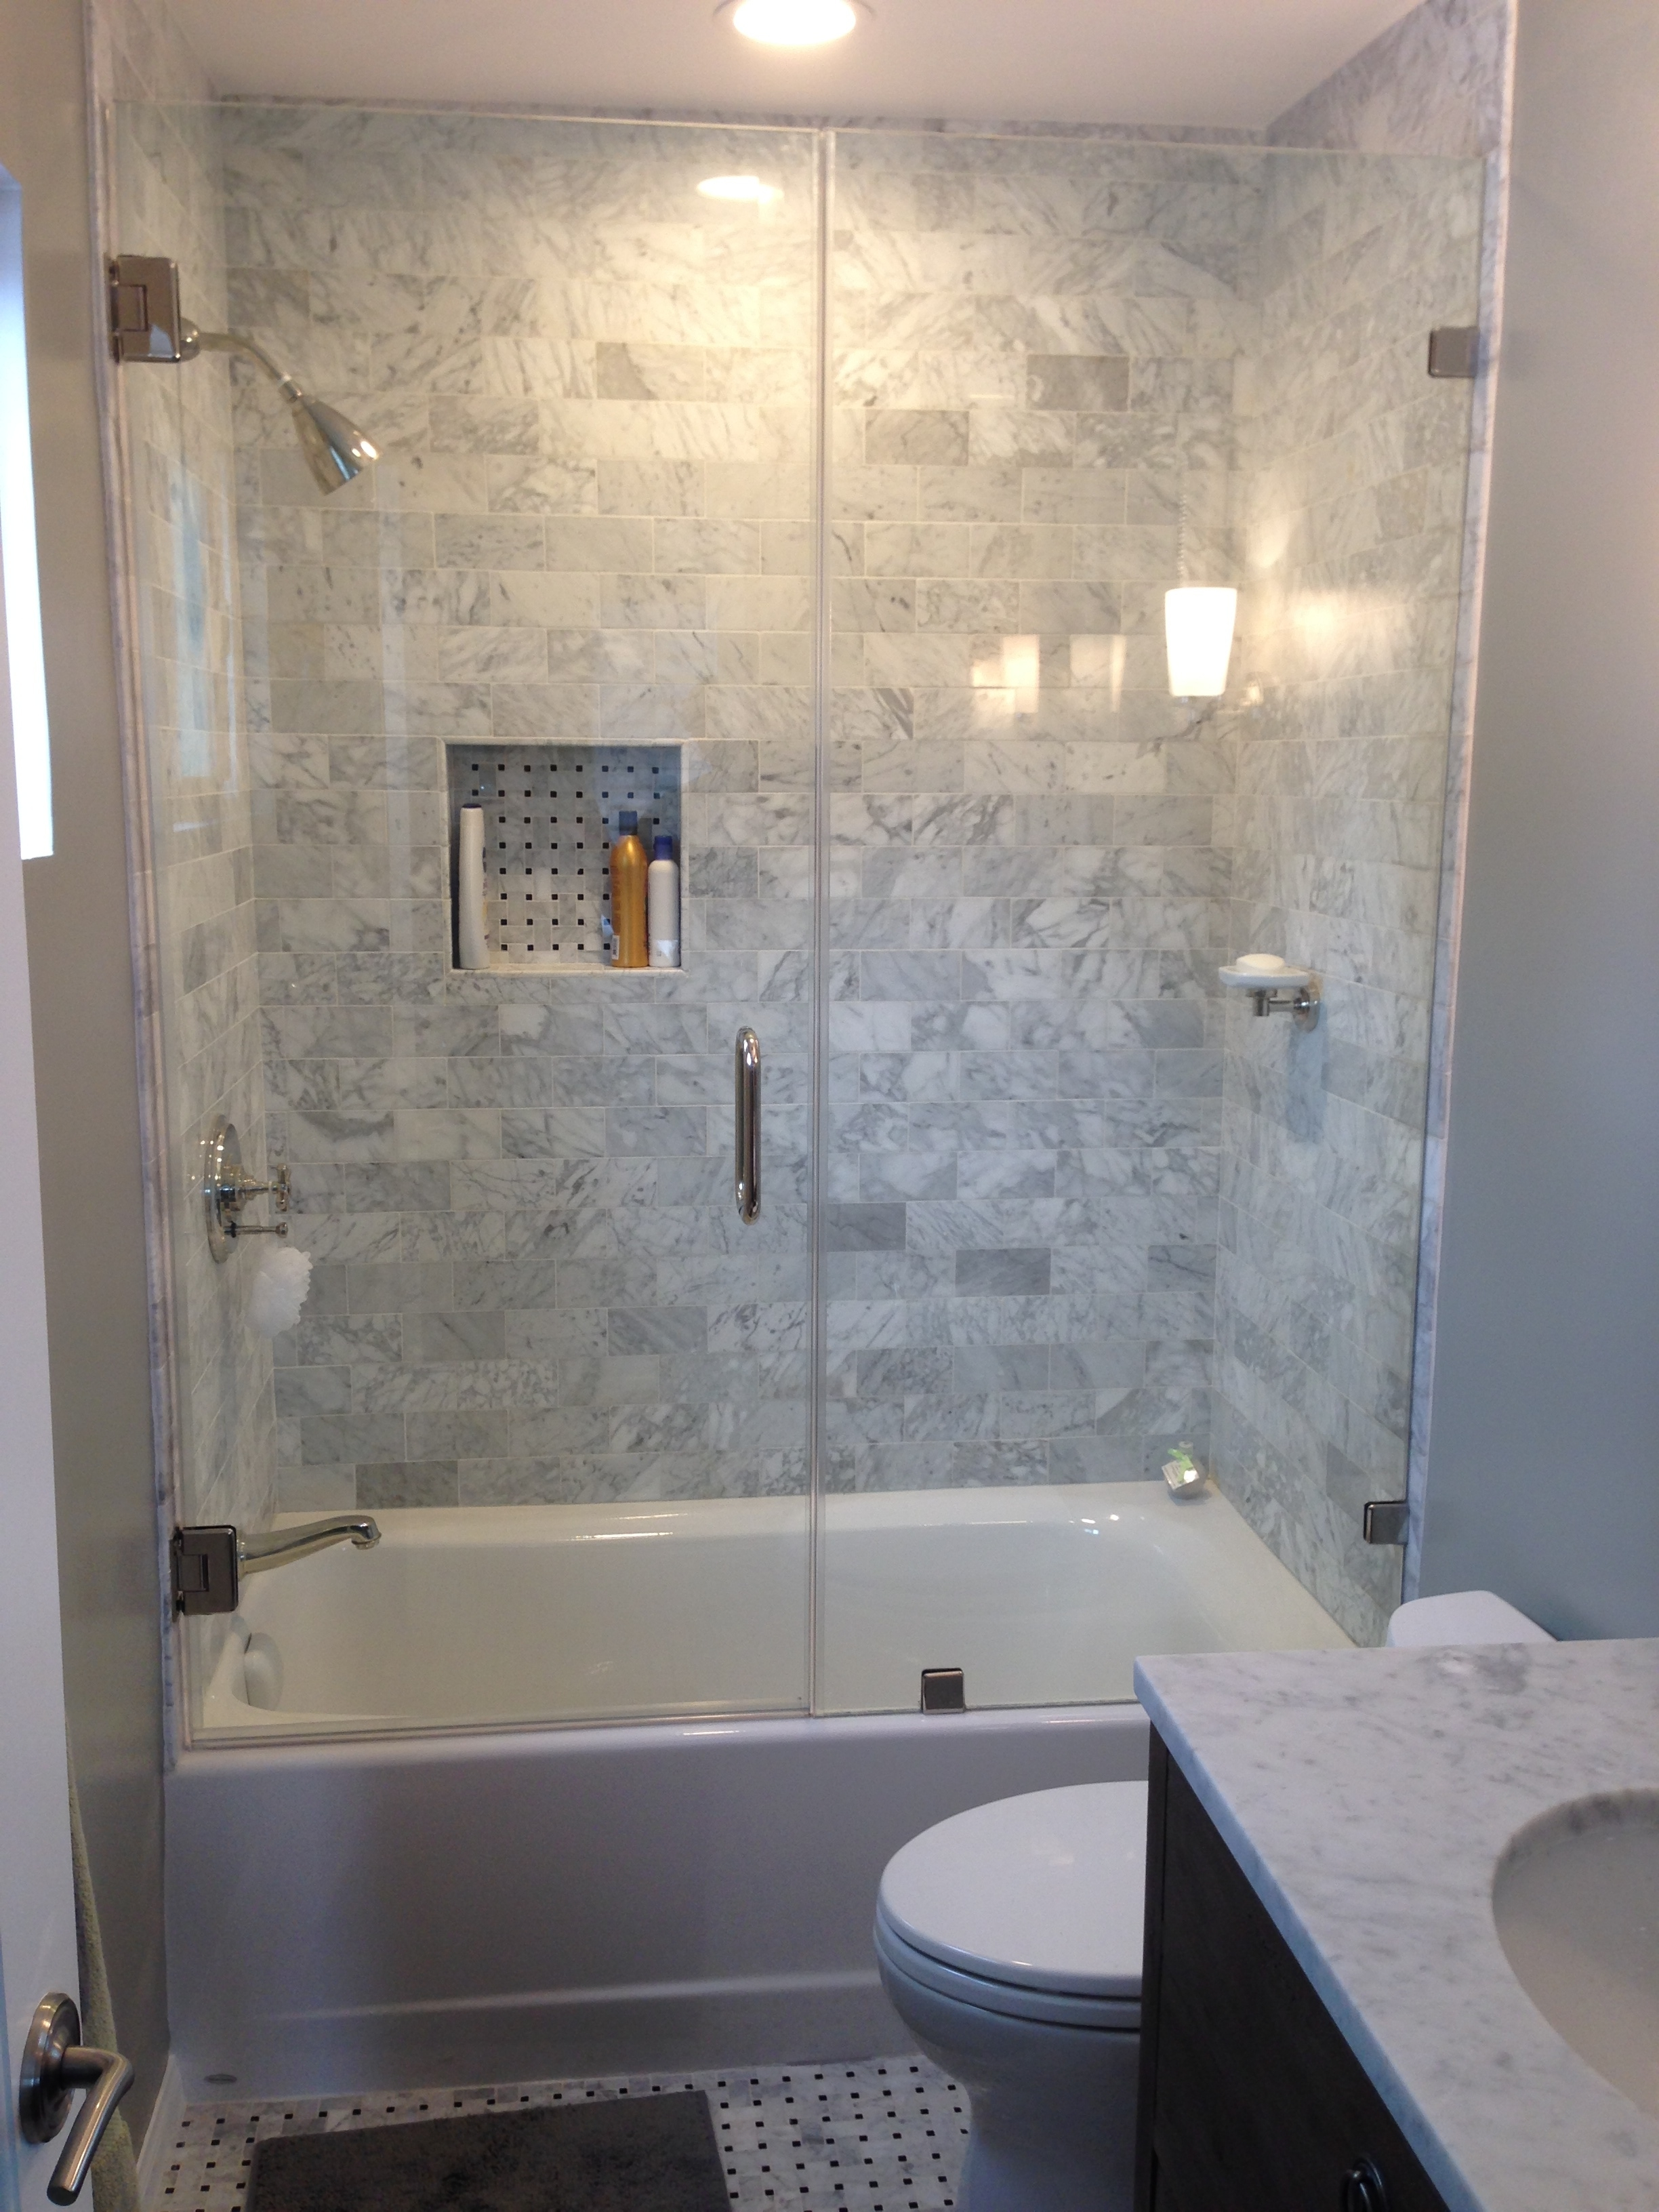 Tub Shower Glass Doorsshower doors project pacific palisades y9 inc